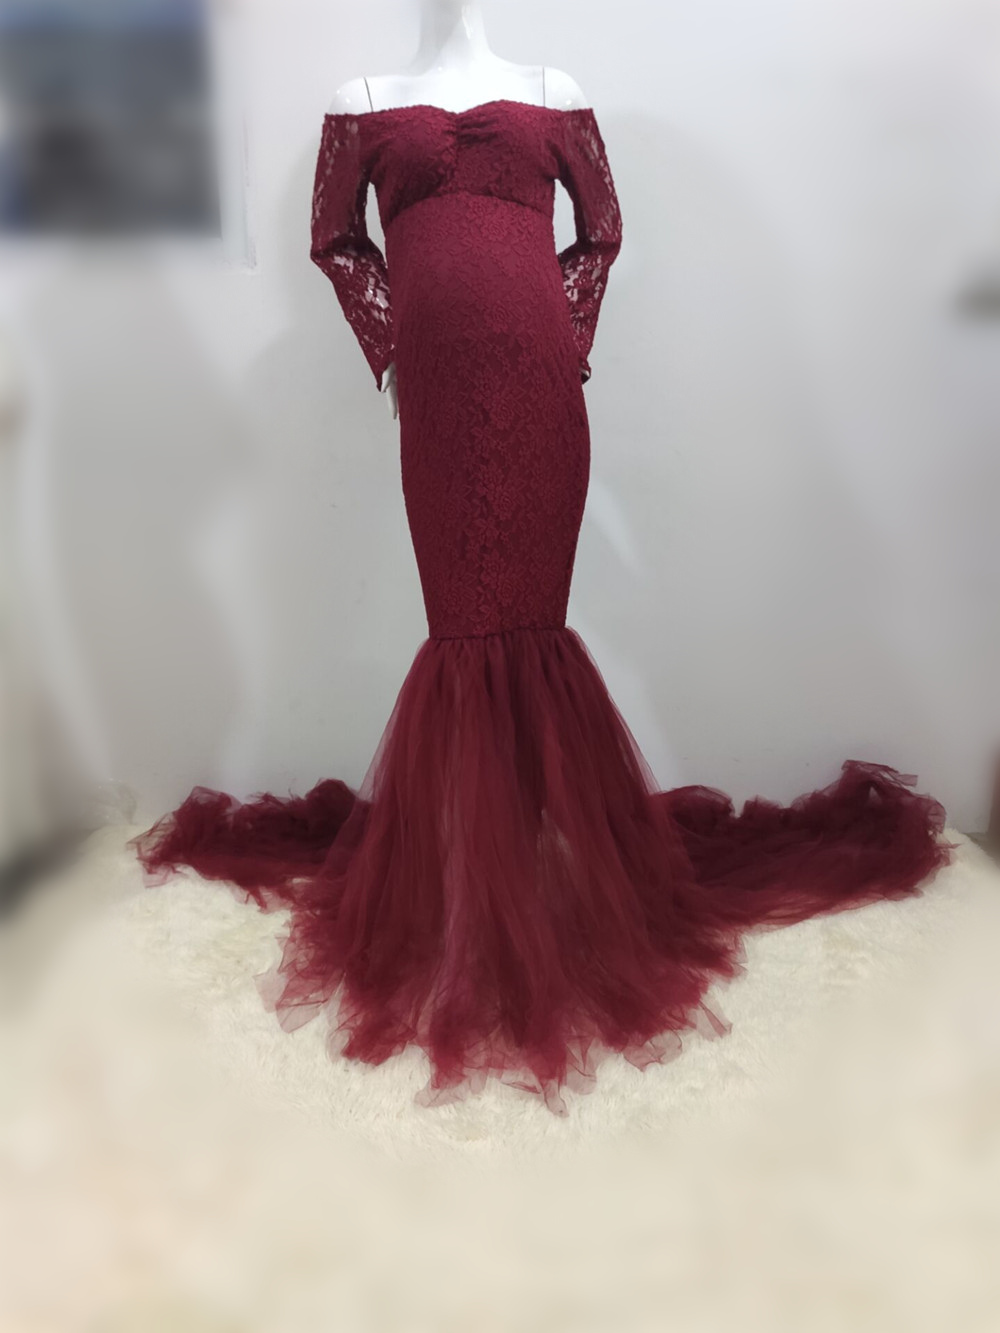 Elegence Maternity Photography Props Dresses Lace Mesh Long Pregnancy Dress For Pregnant Women Maxi Maternity Gown Photo Shoots (4)